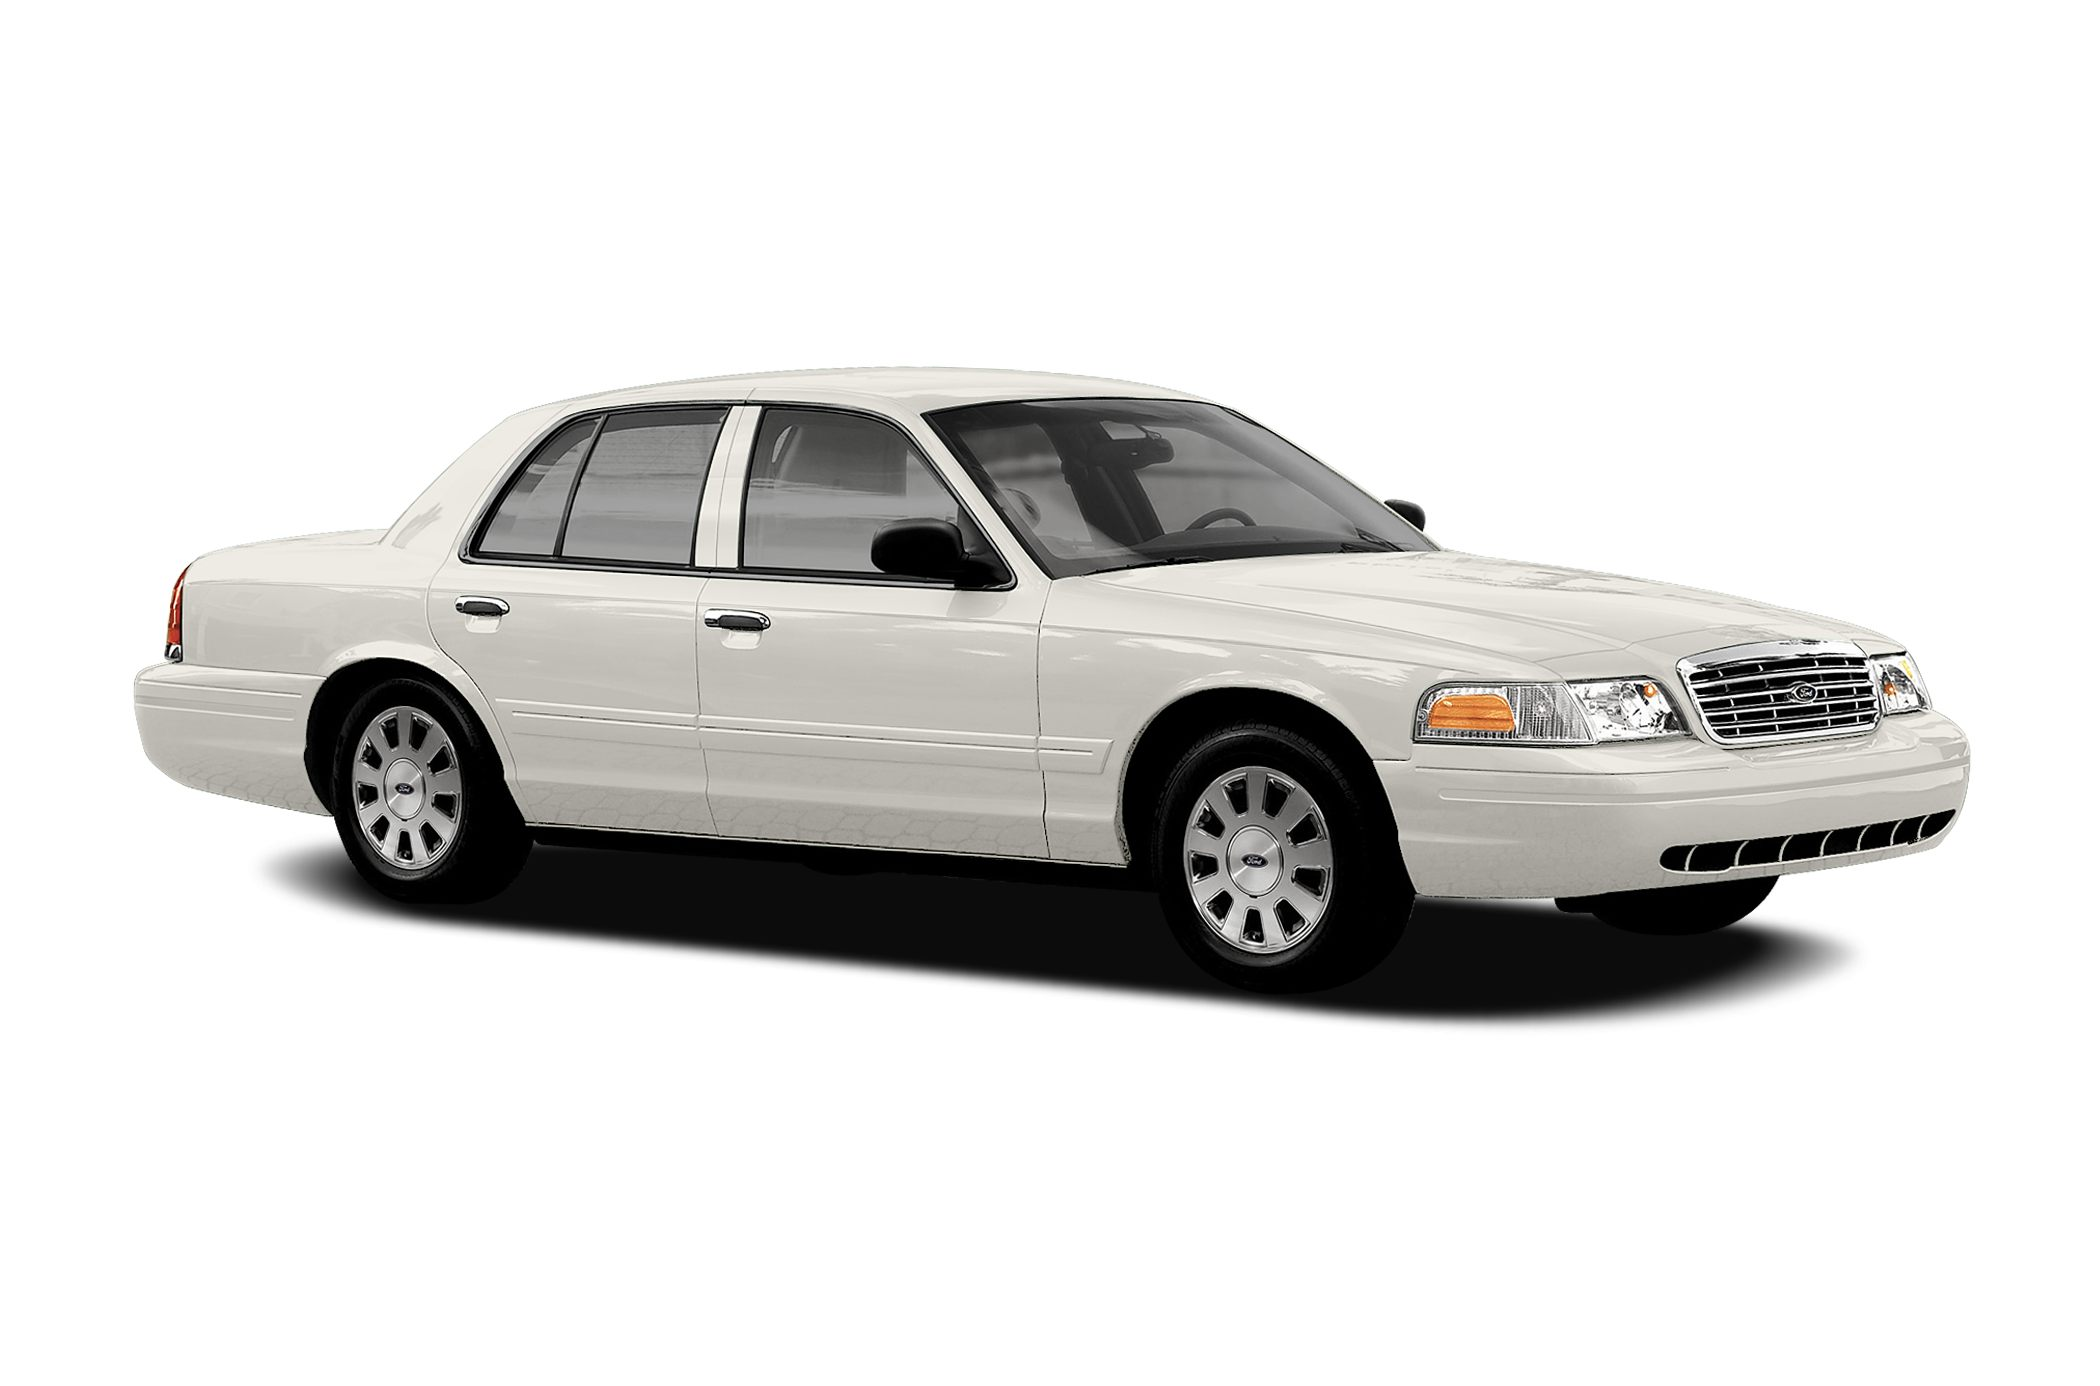 2007 Ford Crown Victoria LX Sedan for sale in Columbia for $7,995 with 79,727 miles.